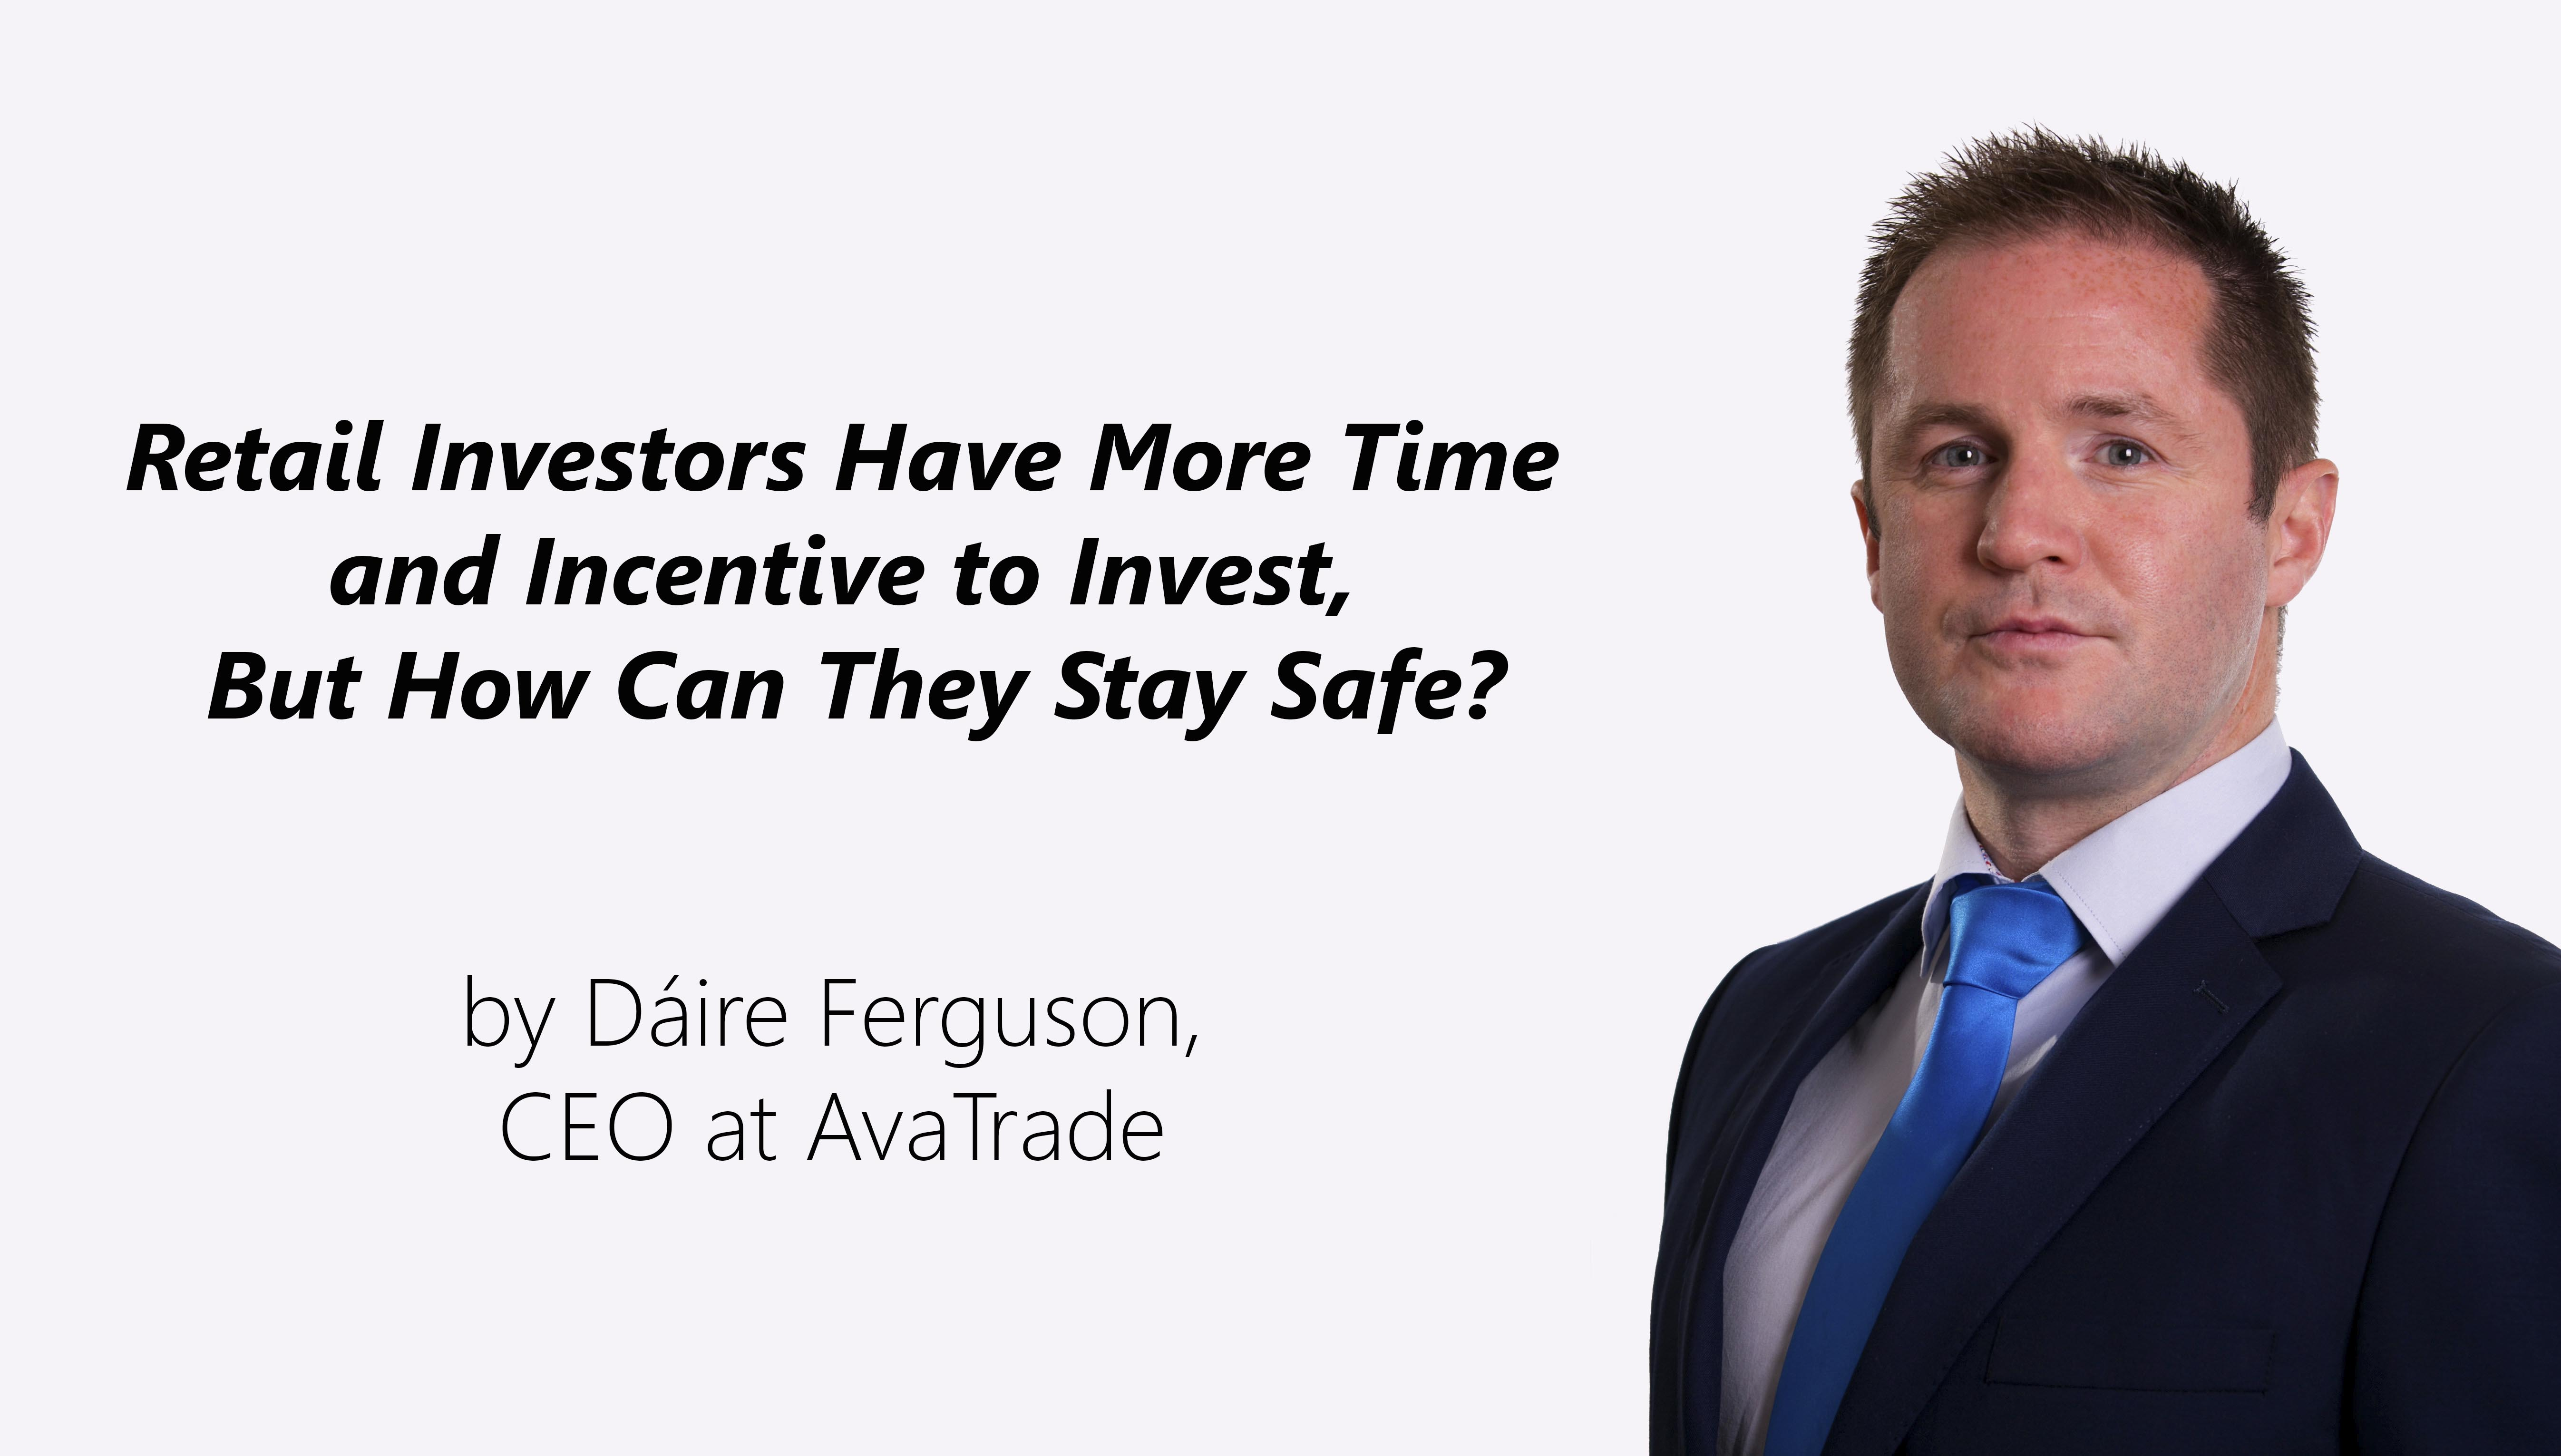 Retail Investors Have More Time and Incentive to Invest, But How Can They Stay Safe?